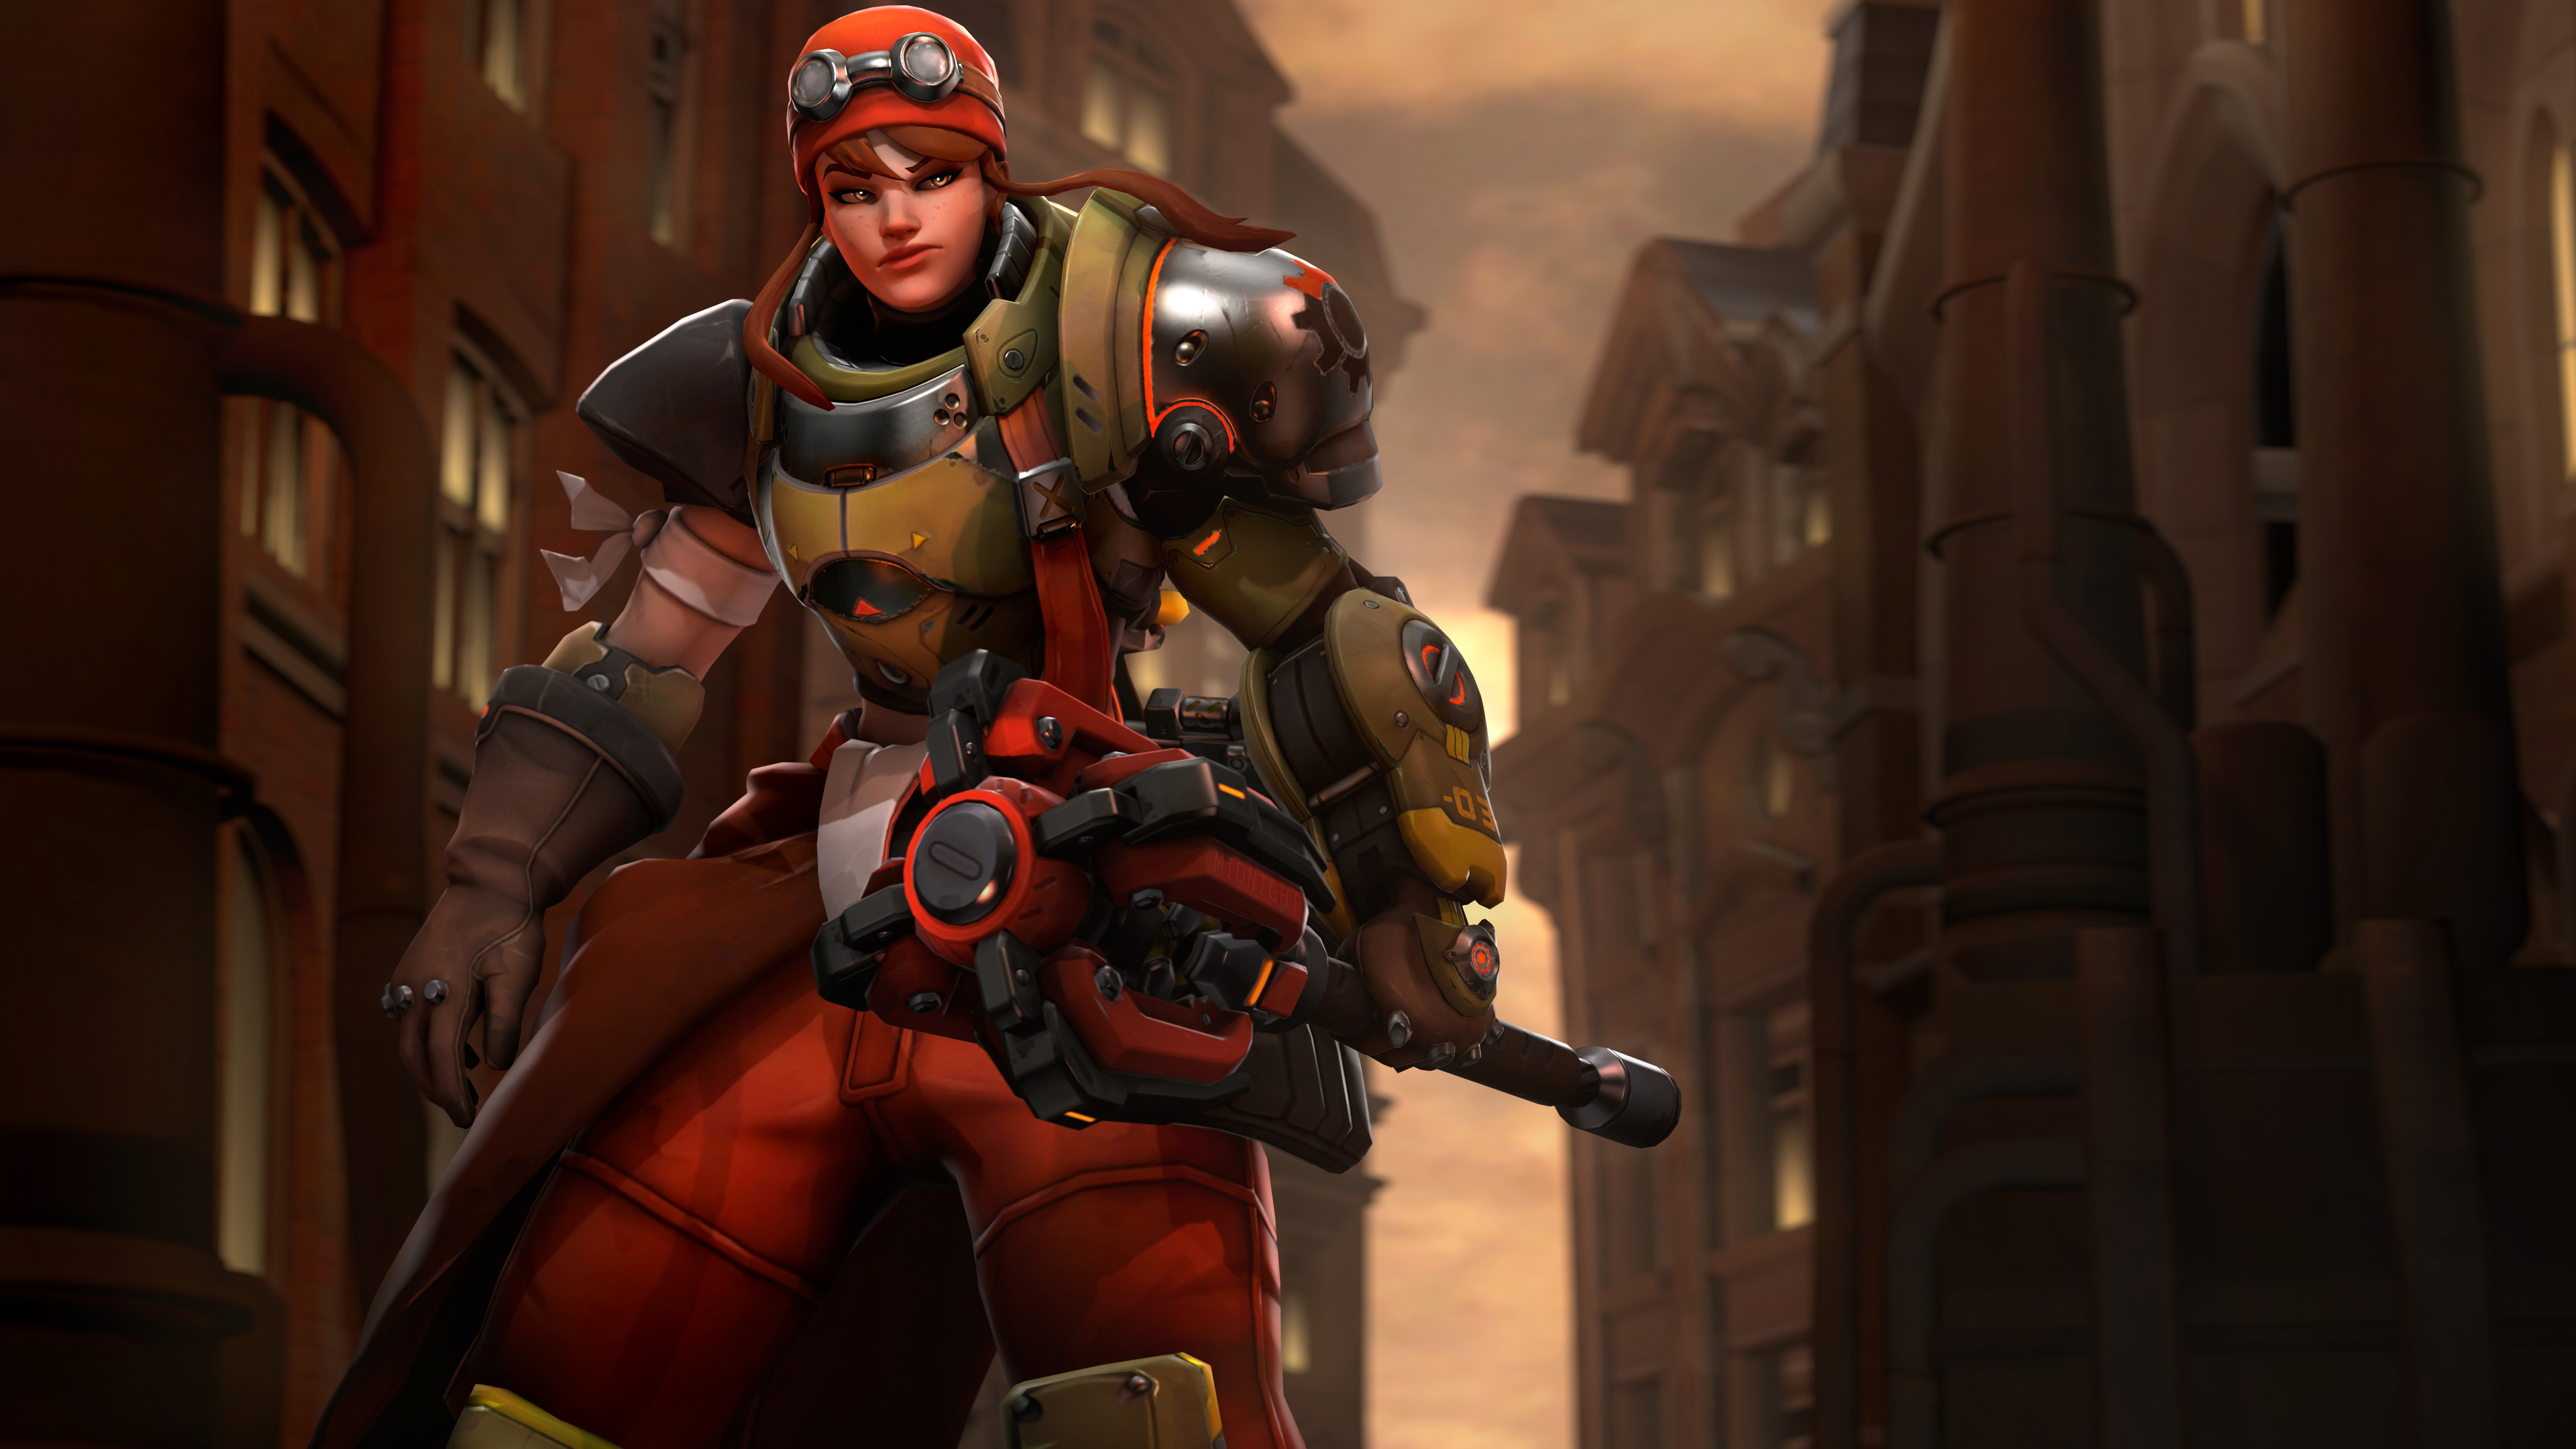 brigitte in overwatch 4k 1545589560 - Brigitte In Overwatch 4k - overwatch wallpapers, hd-wallpapers, games wallpapers, brigitte overwatch wallpapers, 5k wallpapers, 4k-wallpapers